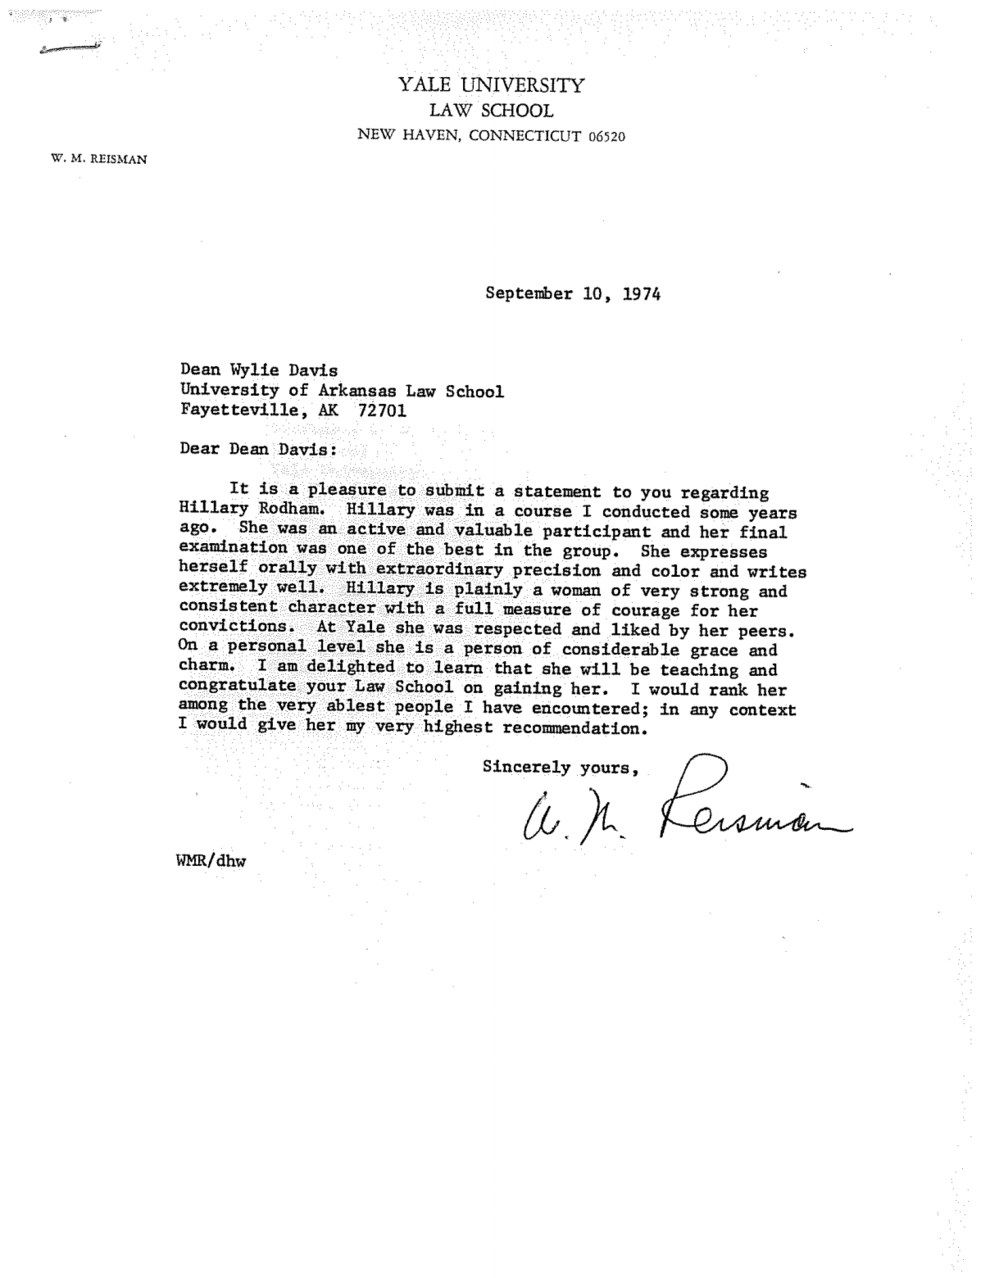 Legal Letter Of Recommendation A Letter Of Recommendation From Yale Law Professor W M Reisman